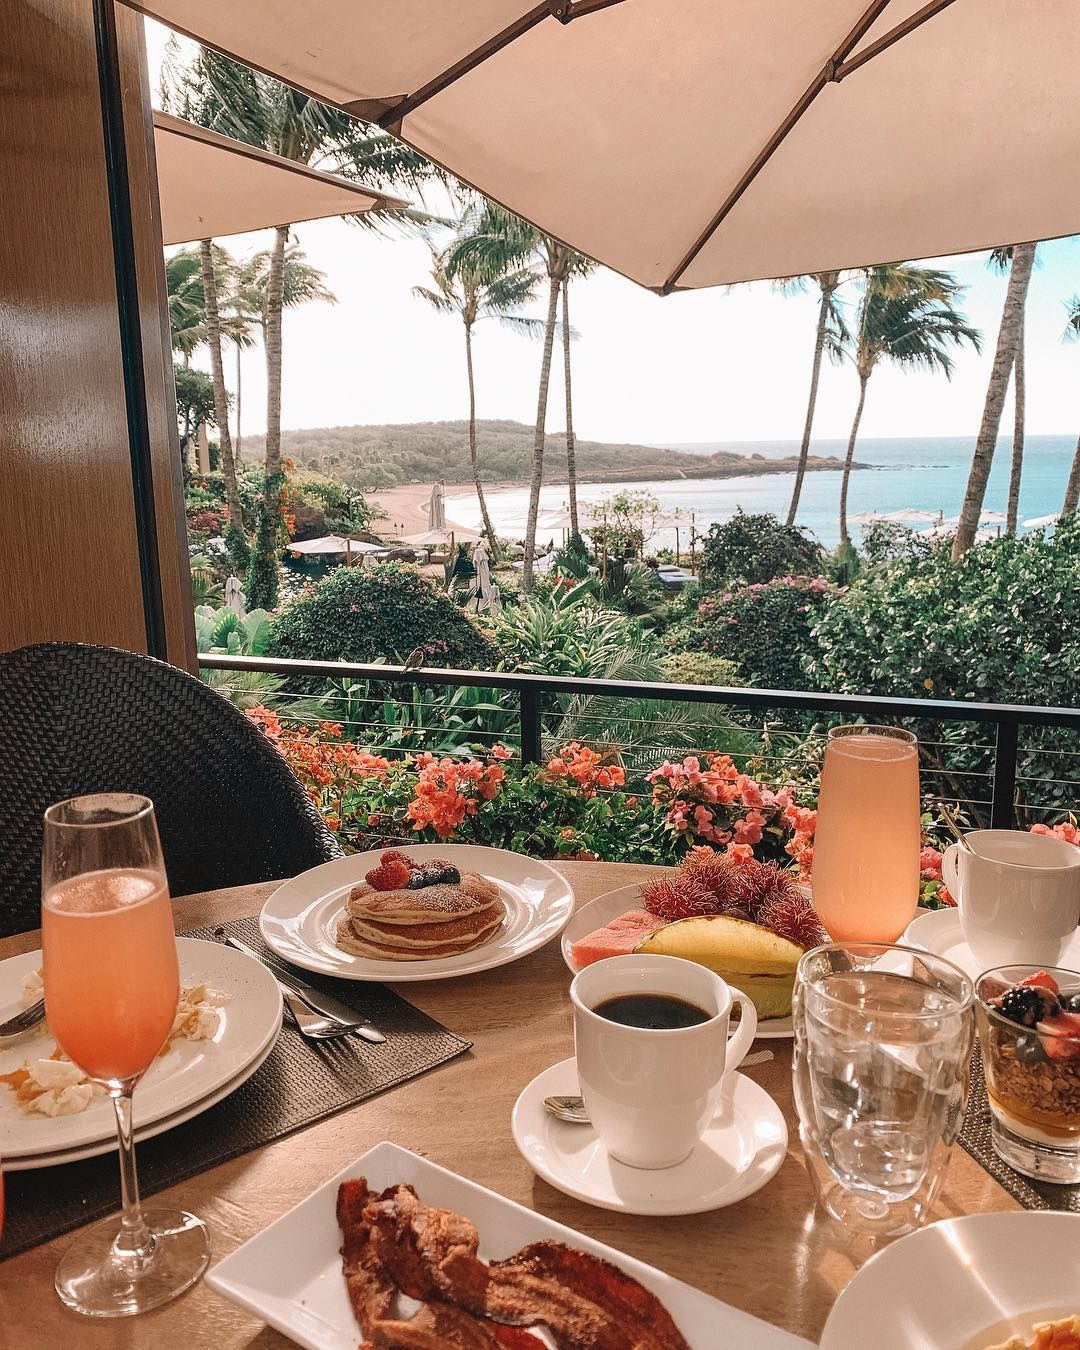 Stephanie Ledda On Instagram Good Morning Is It Morning Where You Guys Are I M Currently On A Pl Breakfast Around The World Breakfast In Bed Breakfast